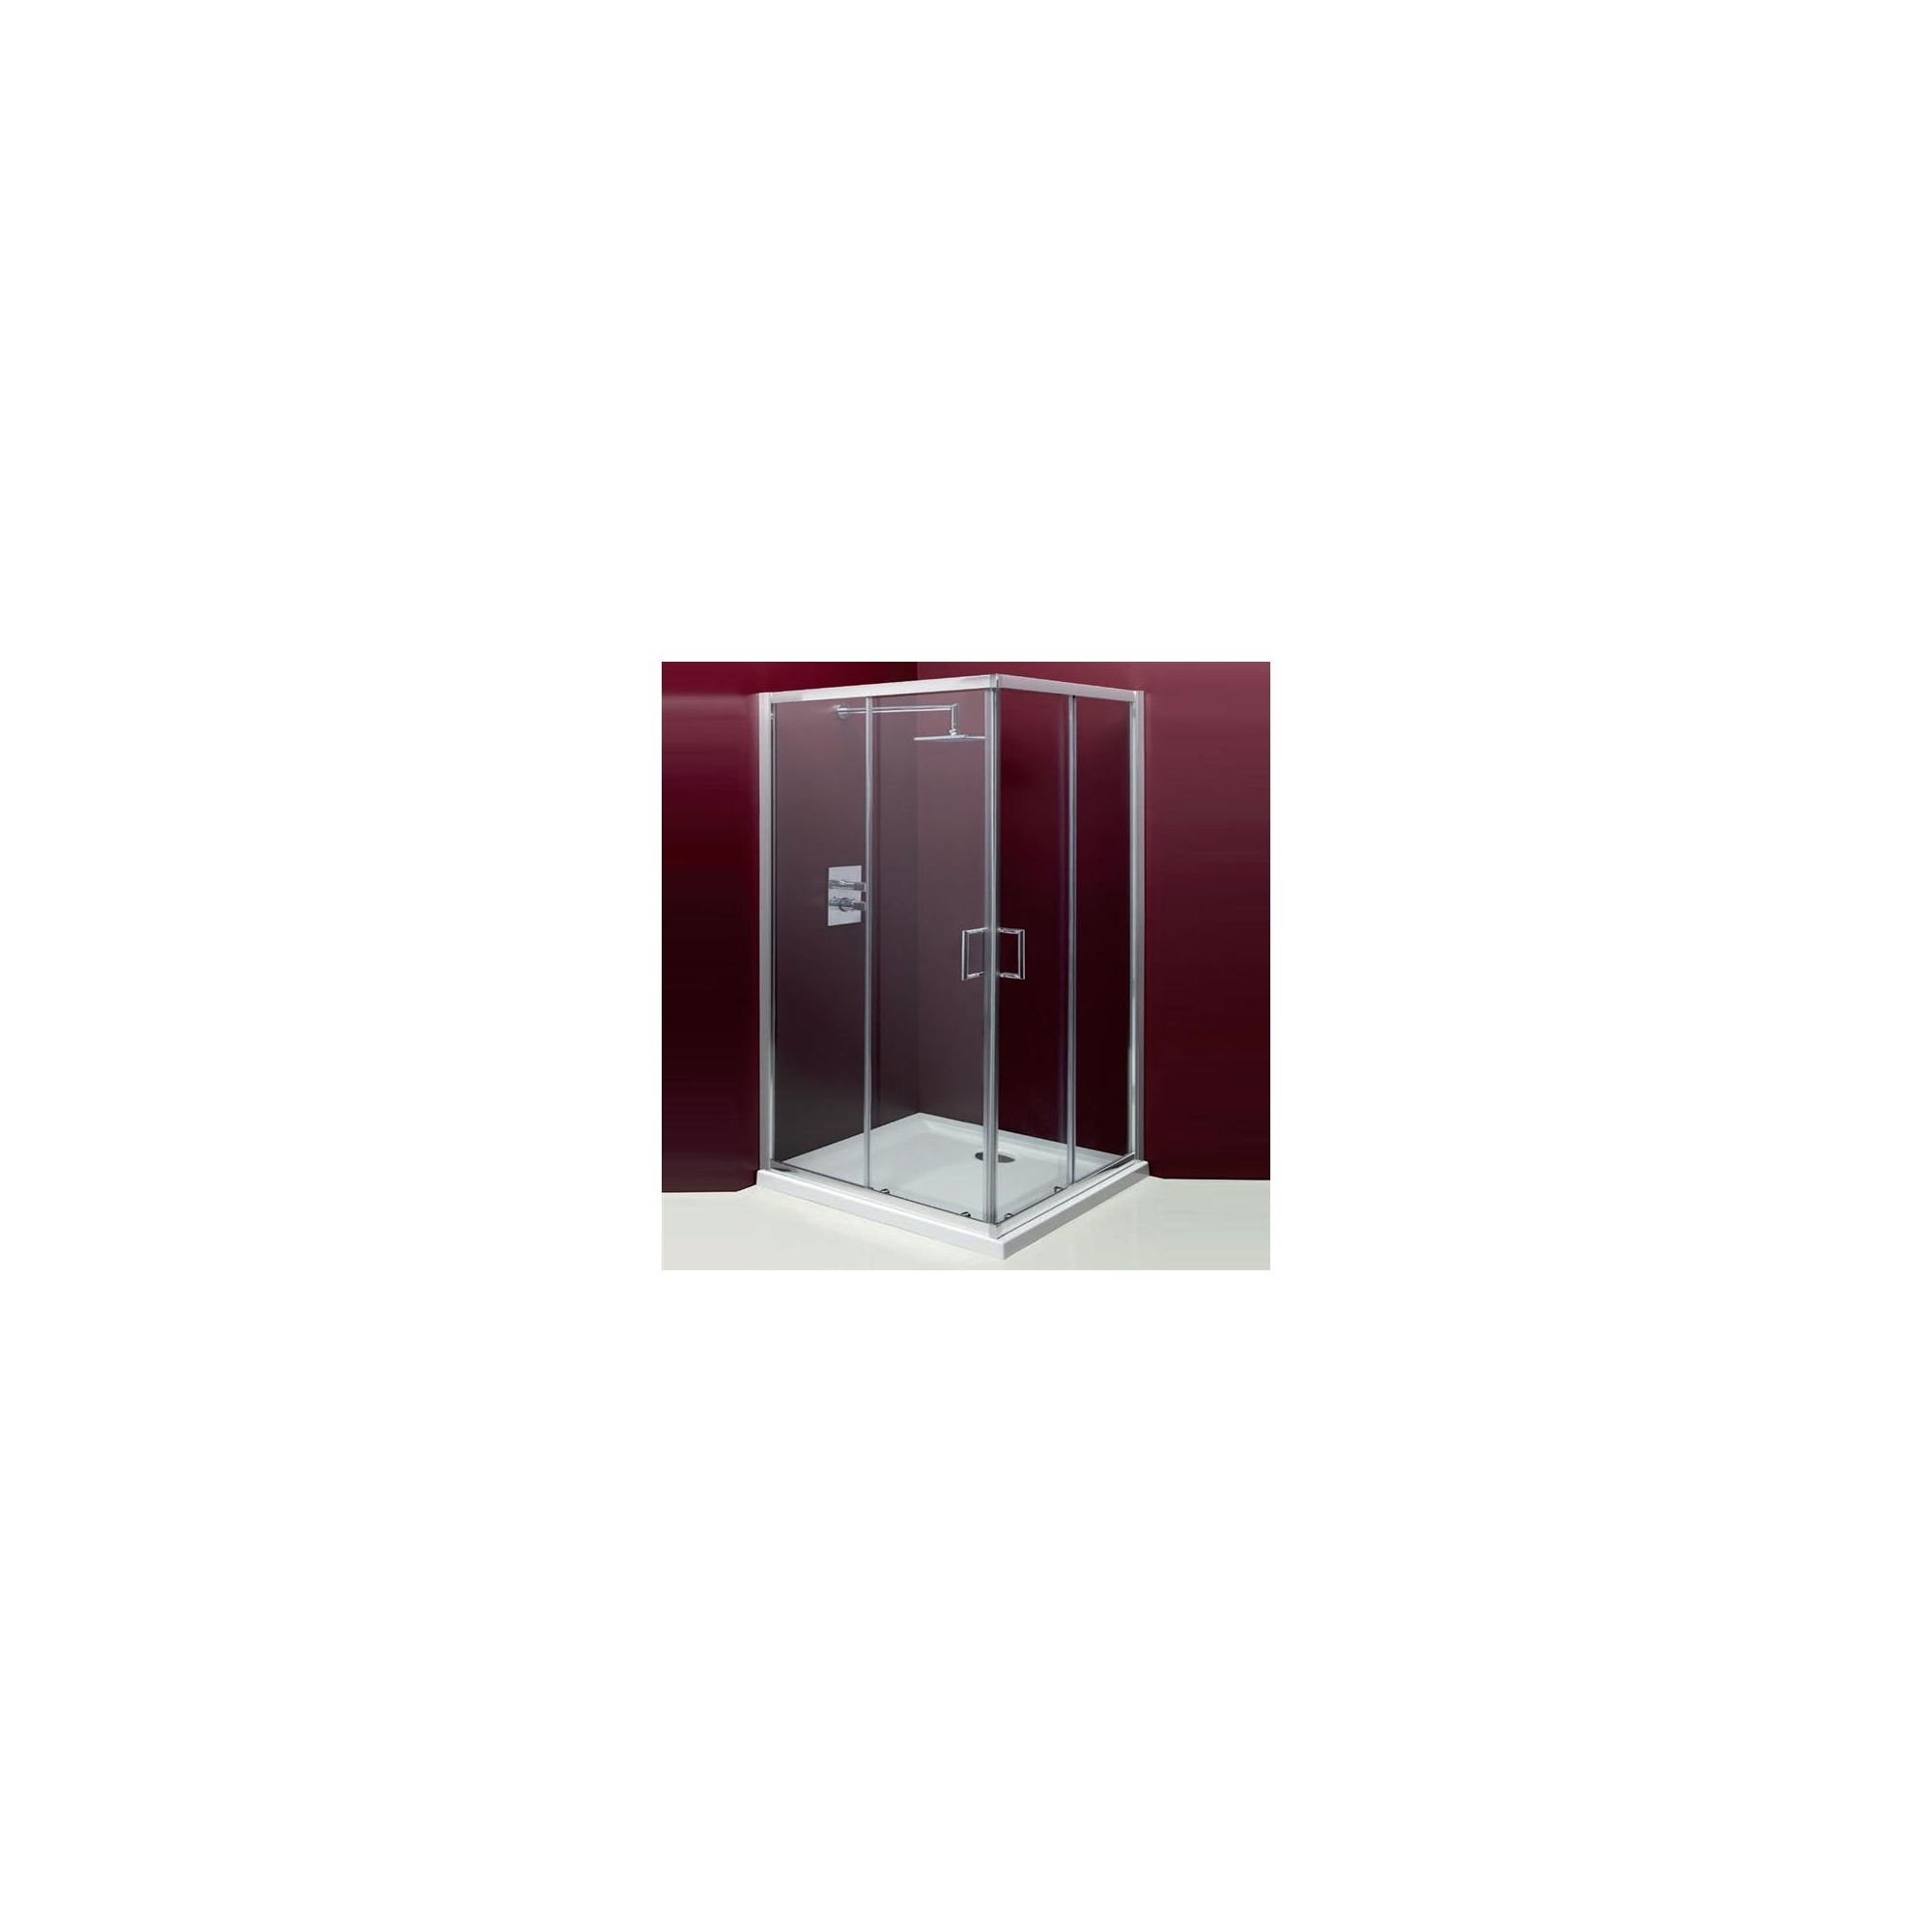 Merlyn Vivid Entree Corner Entry Shower Enclosure, 900mm x 900mm, Low Profile Tray, 6mm Glass at Tesco Direct